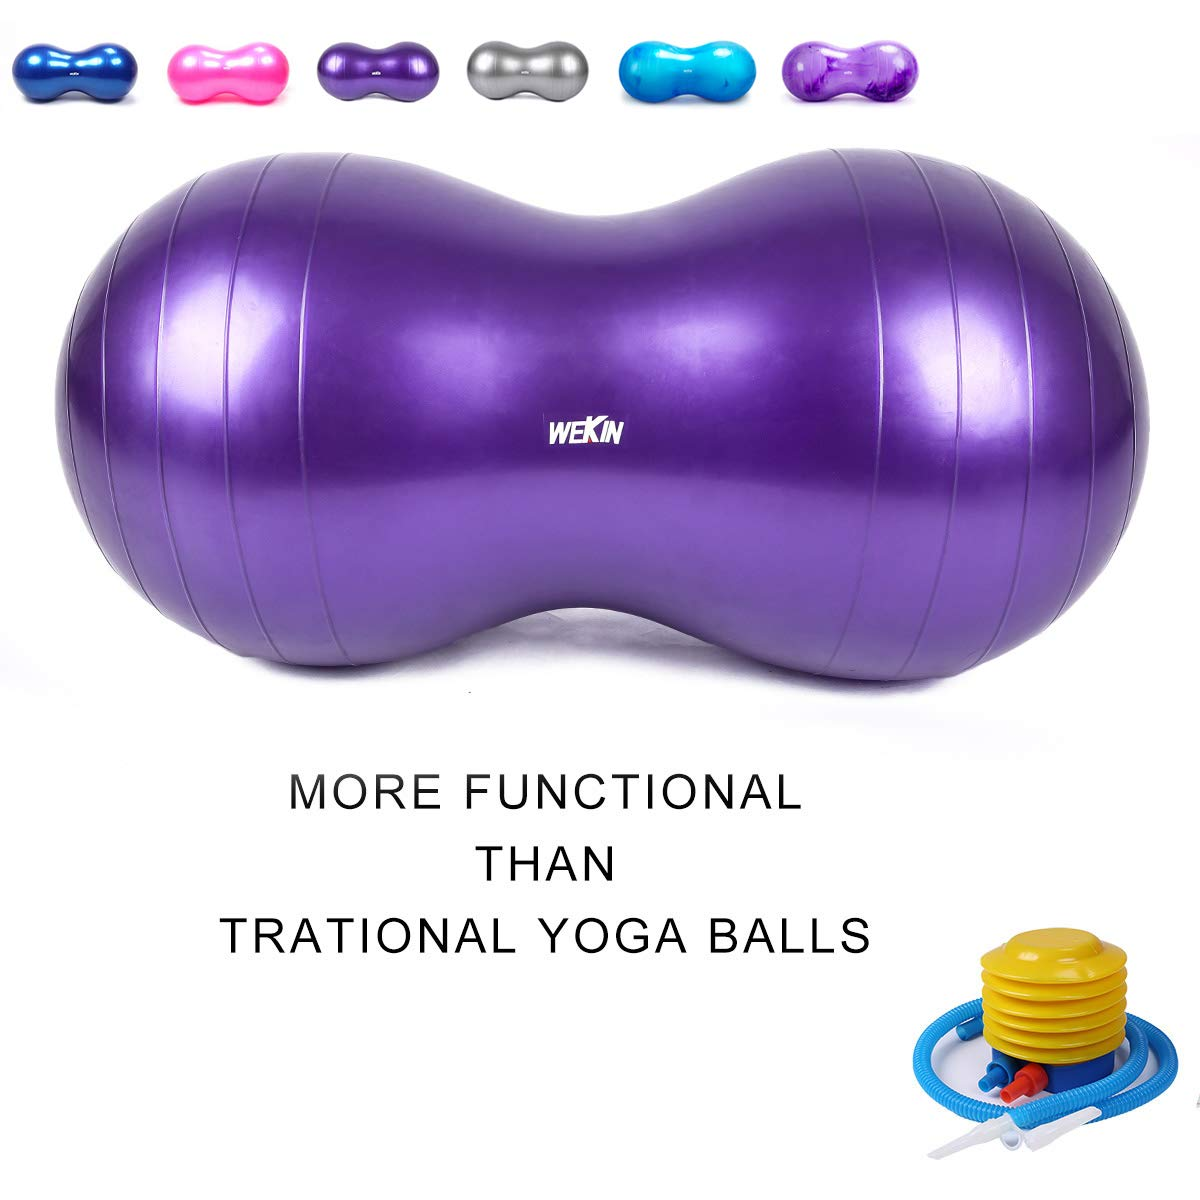 Wekin Physio Roll Therapy Fitness Excercise Peanut Ball for Balance, Labor Birthing, Muscle Tension, Back Pain Relief, Coordinate Development, Dog Training, Home Exercise & Yoga Programme Small Large